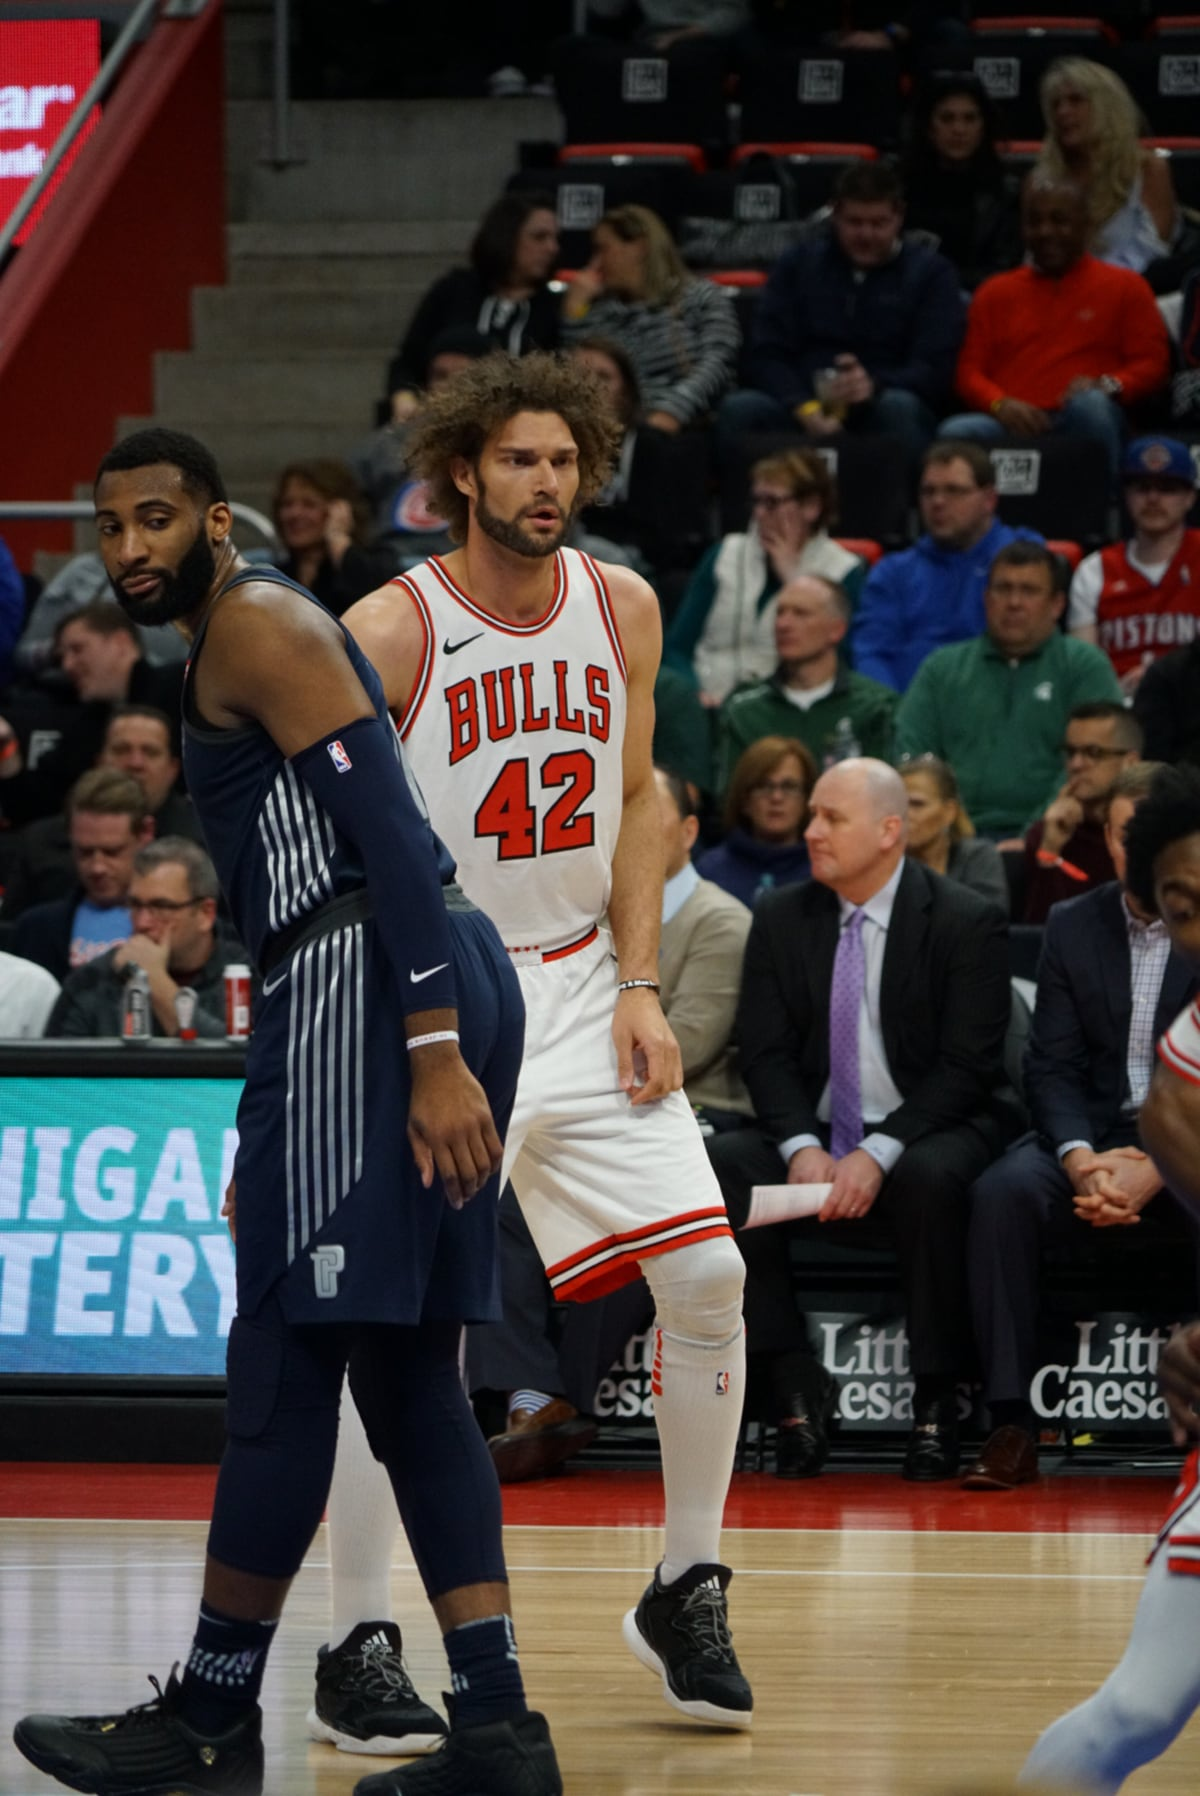 Robin Lopez of the Chicago Bulls vs the Pistons